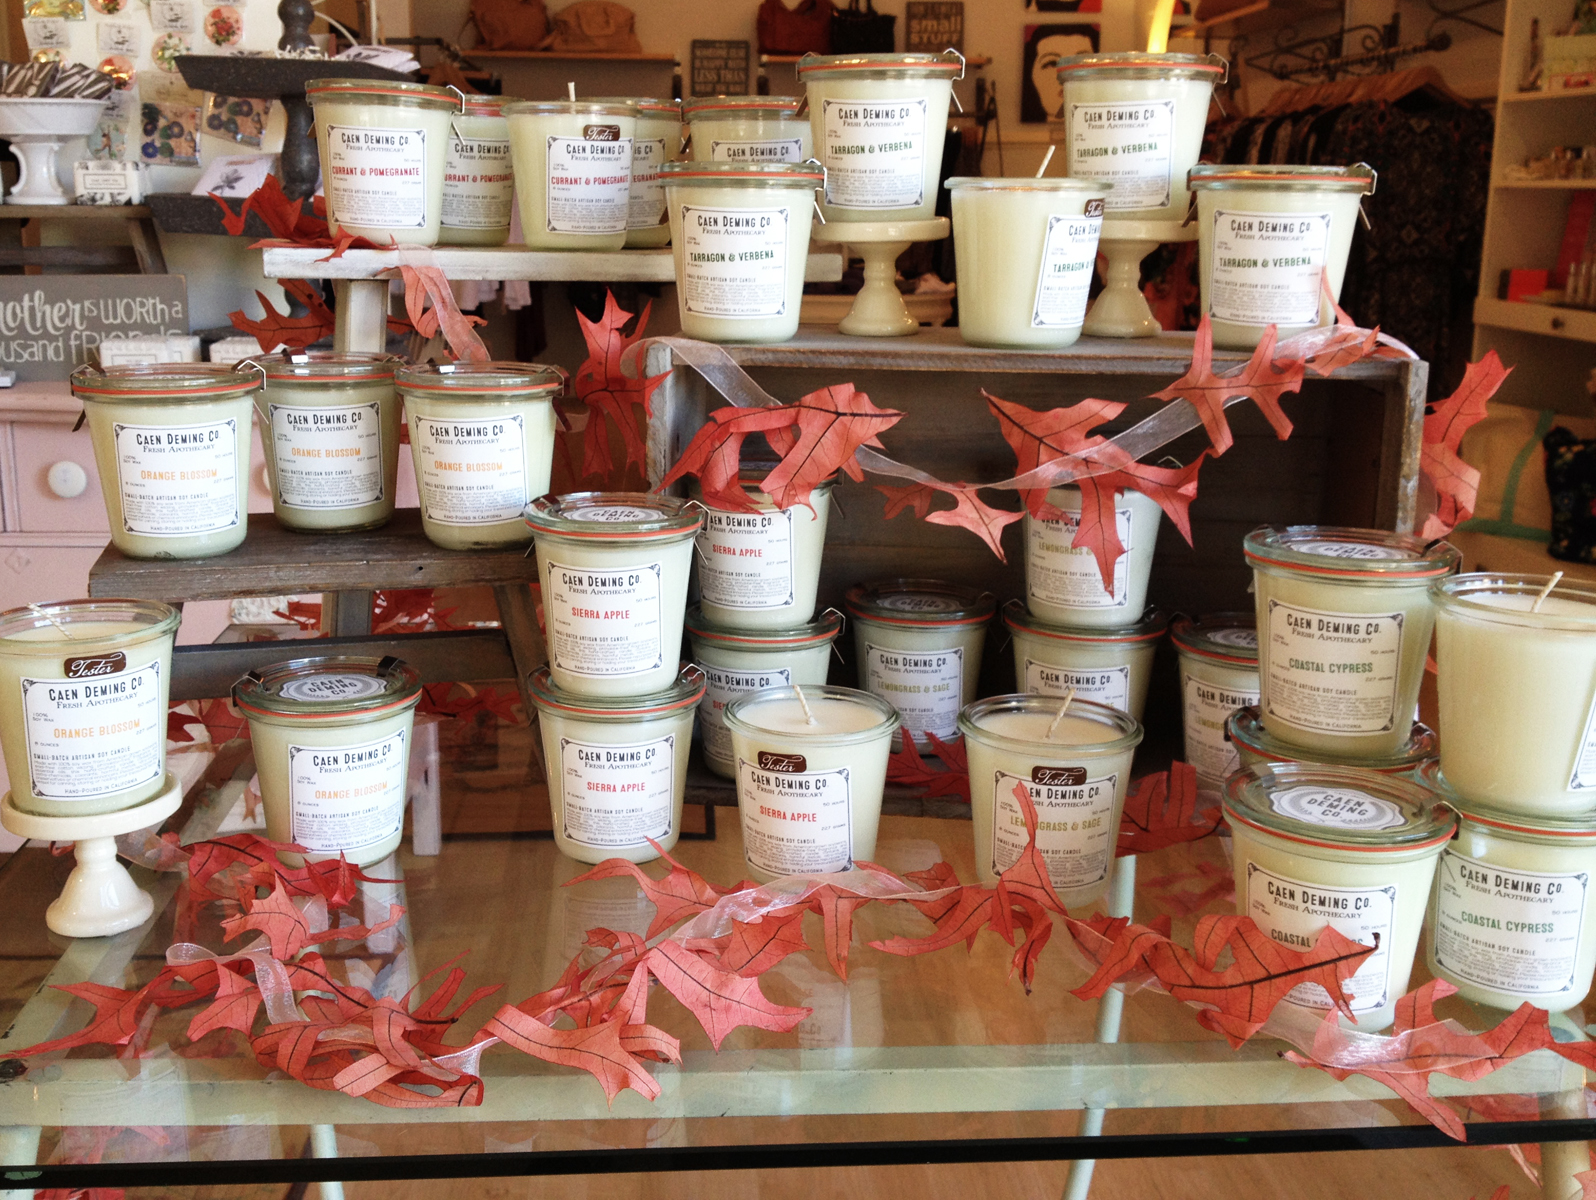 Caen Deming Co. Candles